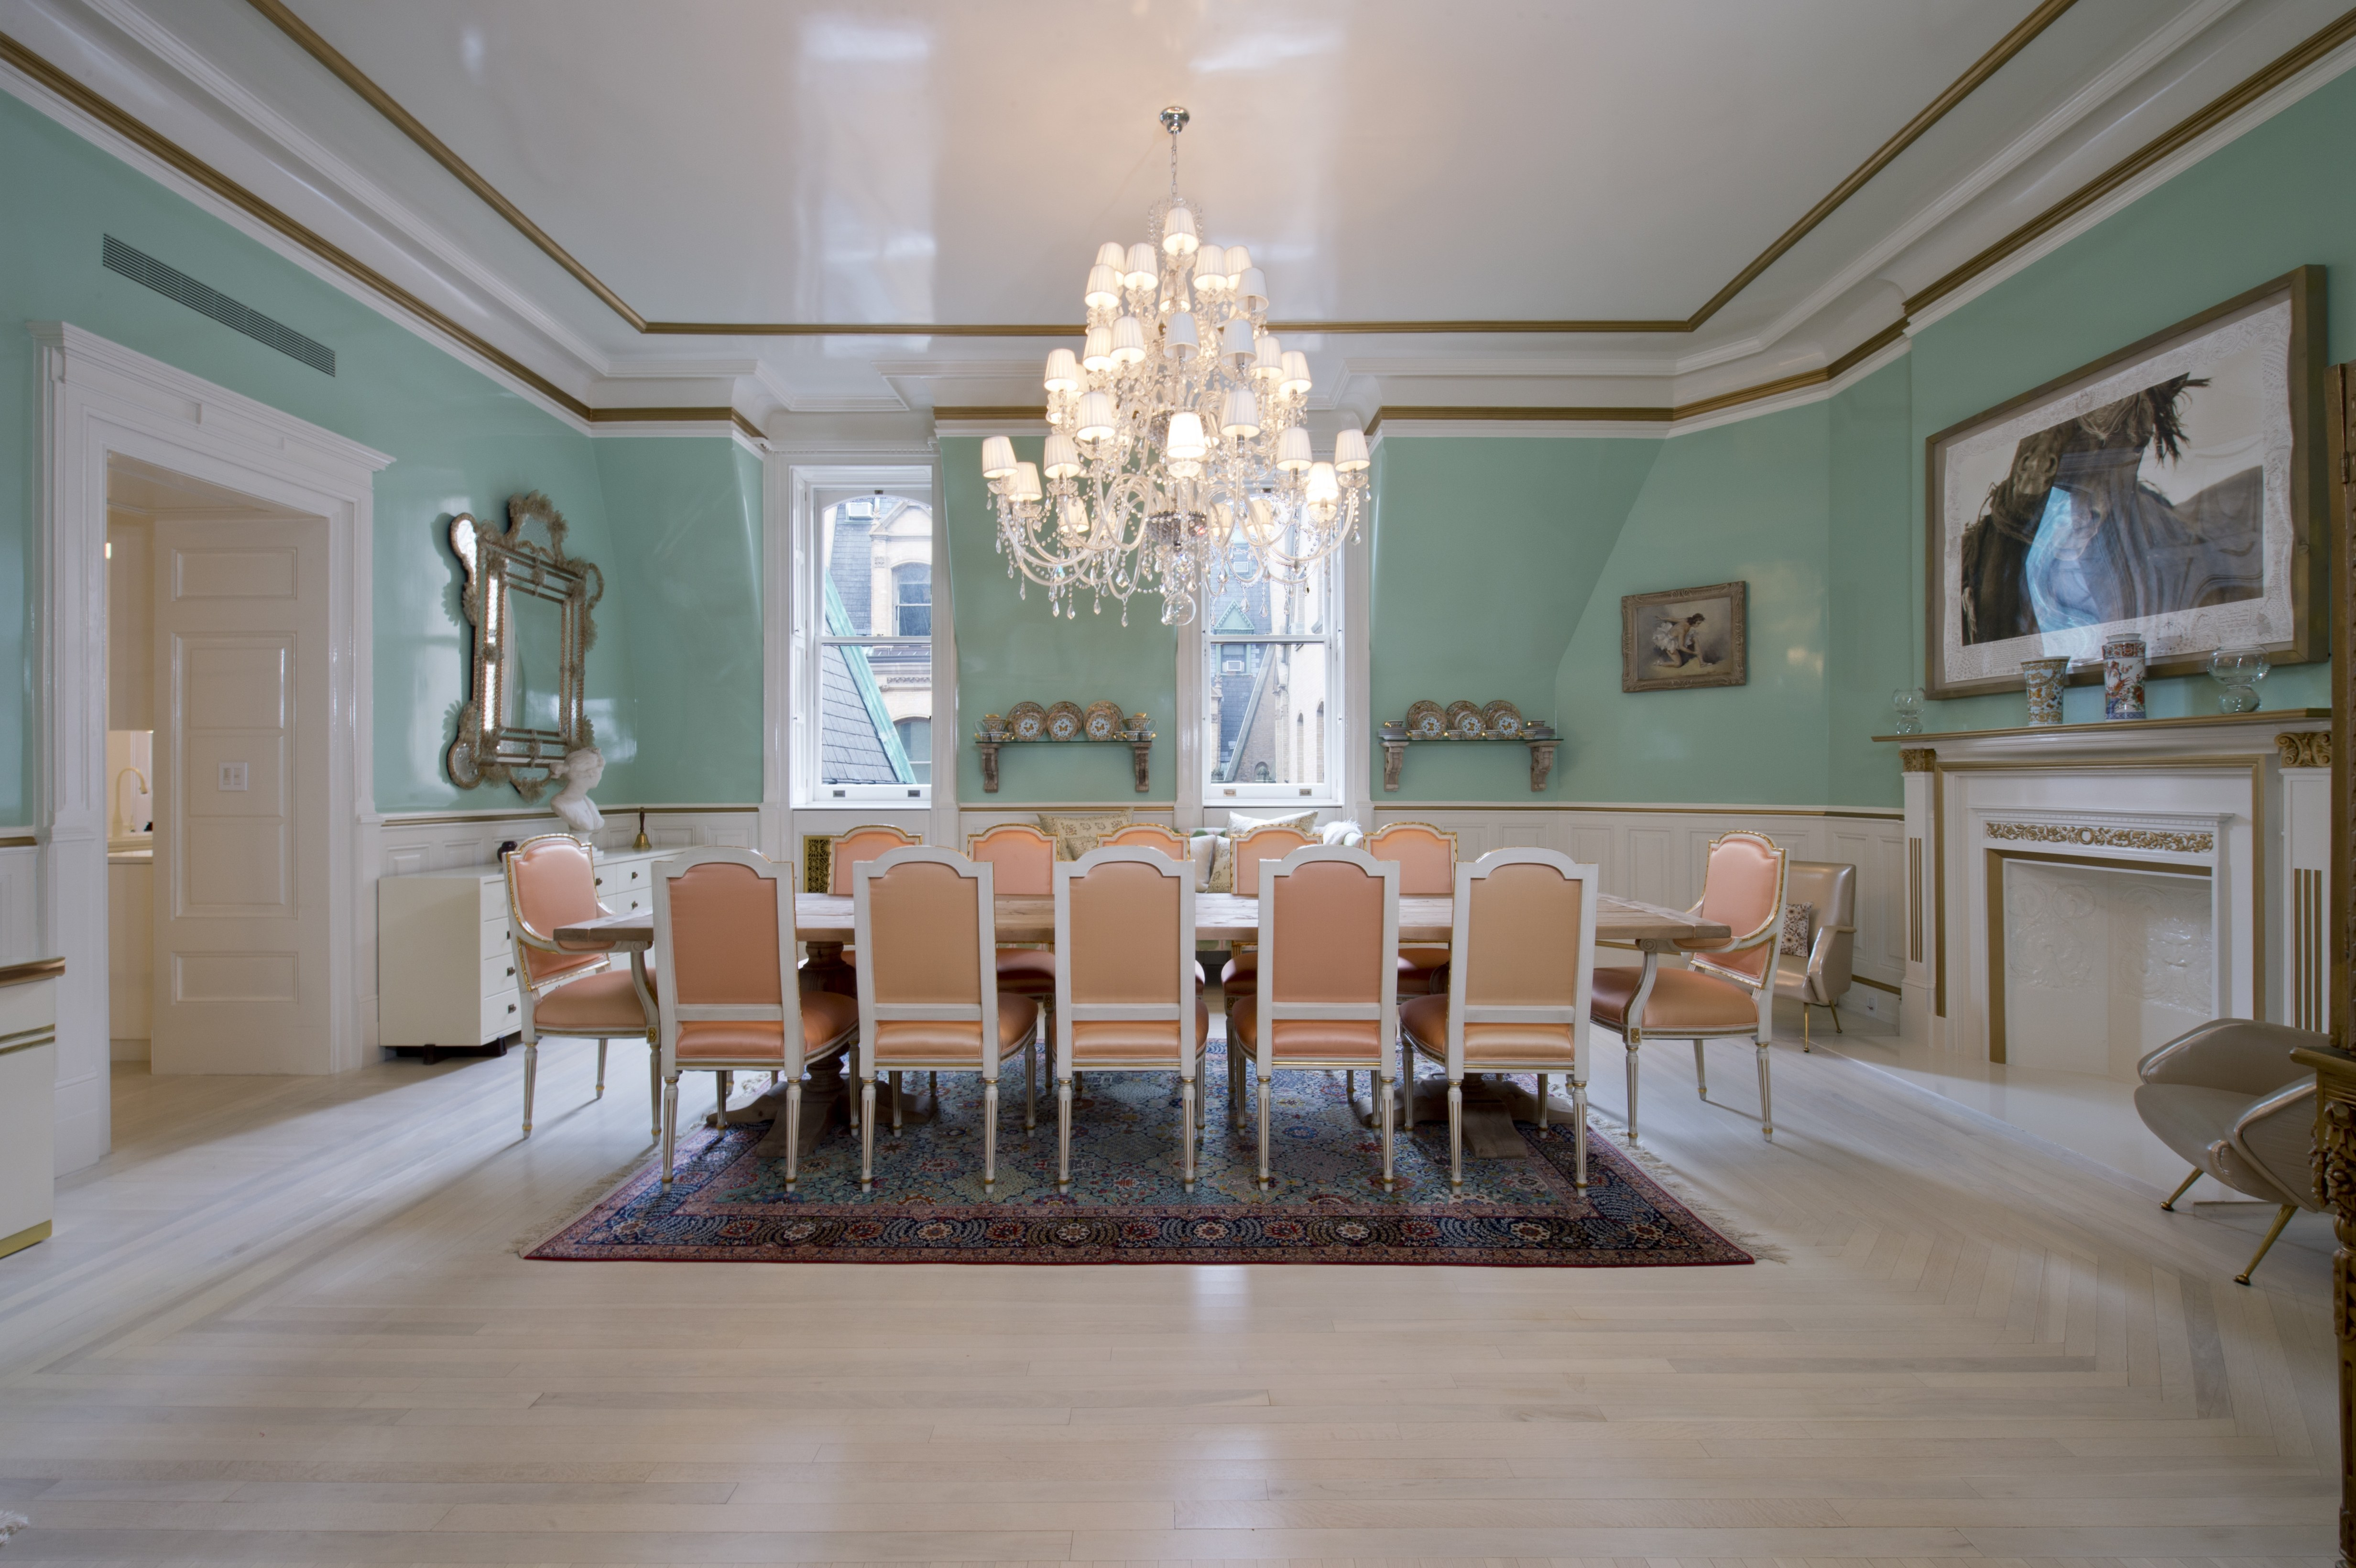 Judy Garlands former New York apartment boasts opulent interior finishings throughout. Source: Architectural Digest